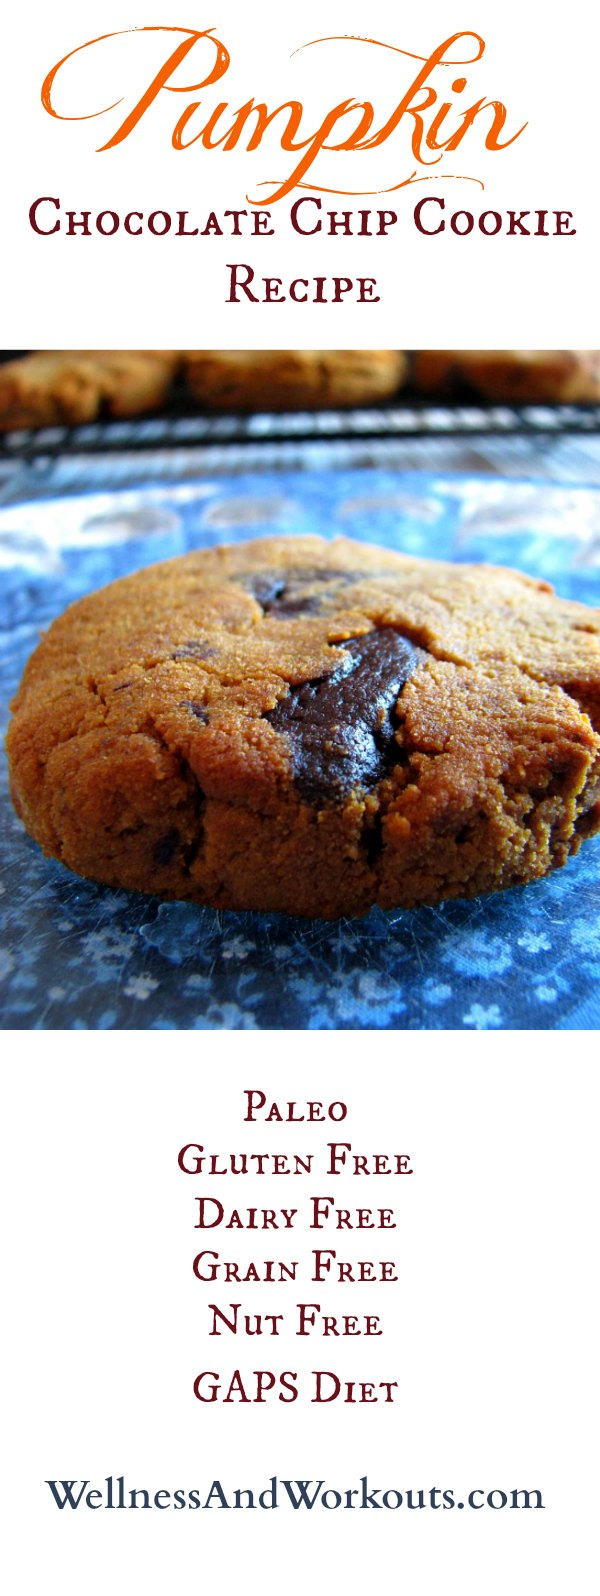 Healthy, soft, pumpkin chocolate chip cookie recipe with lots of coconut goodness! Gluten free, Paleo, Grain Free, Dairy Free, GAPS Diet & Nut Free. DELICIOUS! #paleo #healthyrecipe #glutenfree